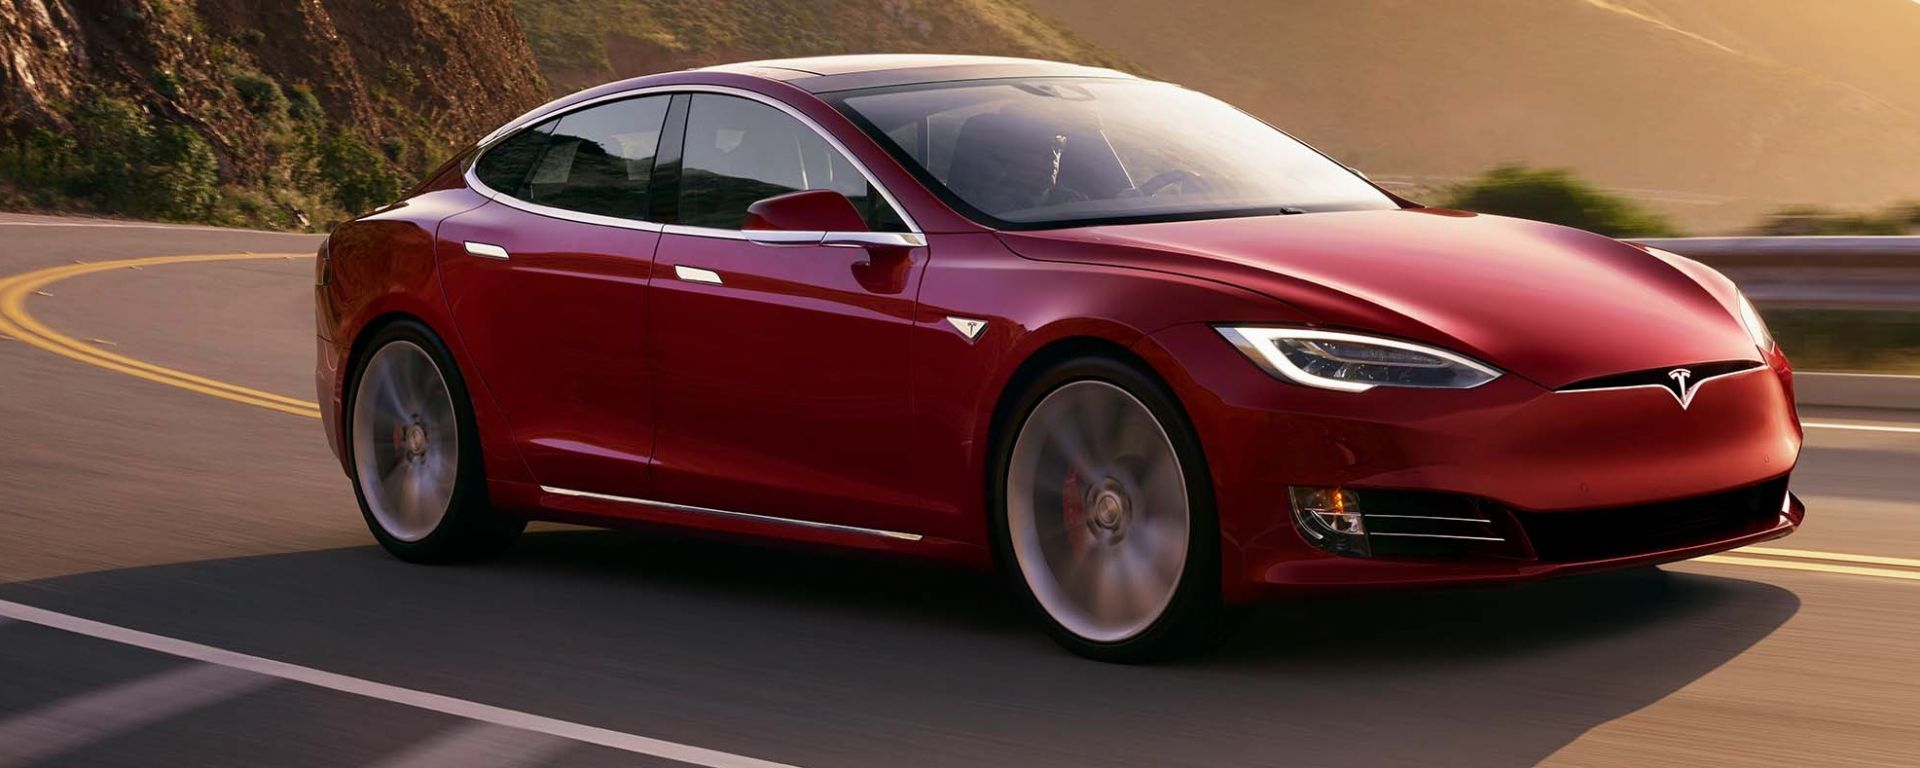 Tesla Model S P100D: con la batteria da 100 kWh fa 0-60 in 2,5 secondi